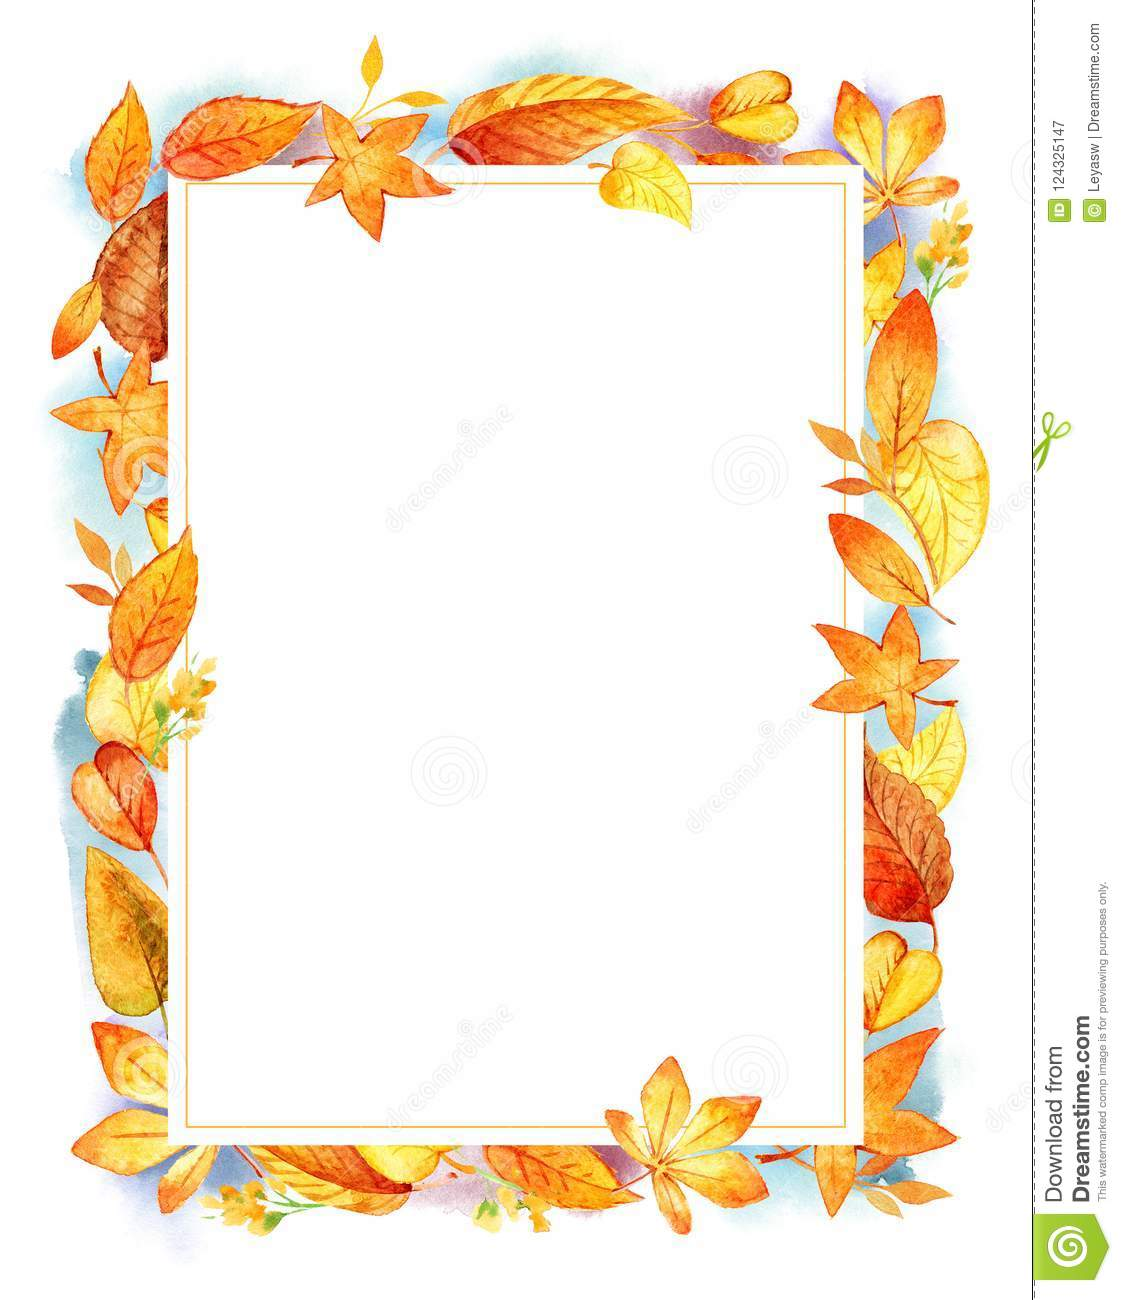 autumn leaves fall frame template watercolor illustration isolated